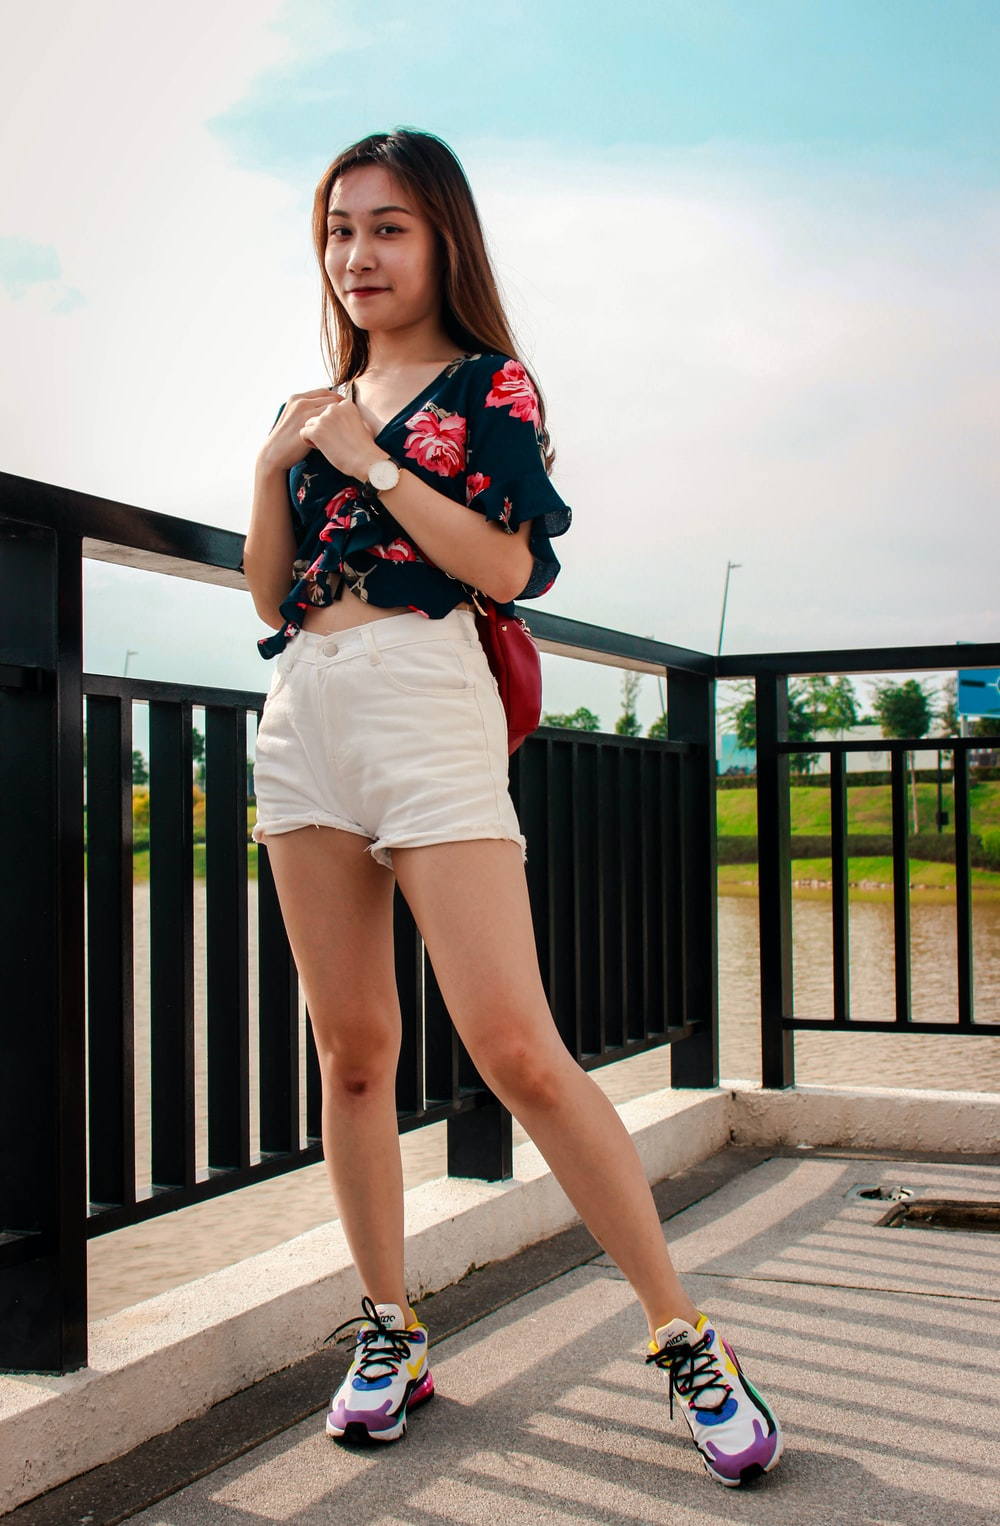 woman in black and red floral shirt and white shorts standing beside black metal fence during